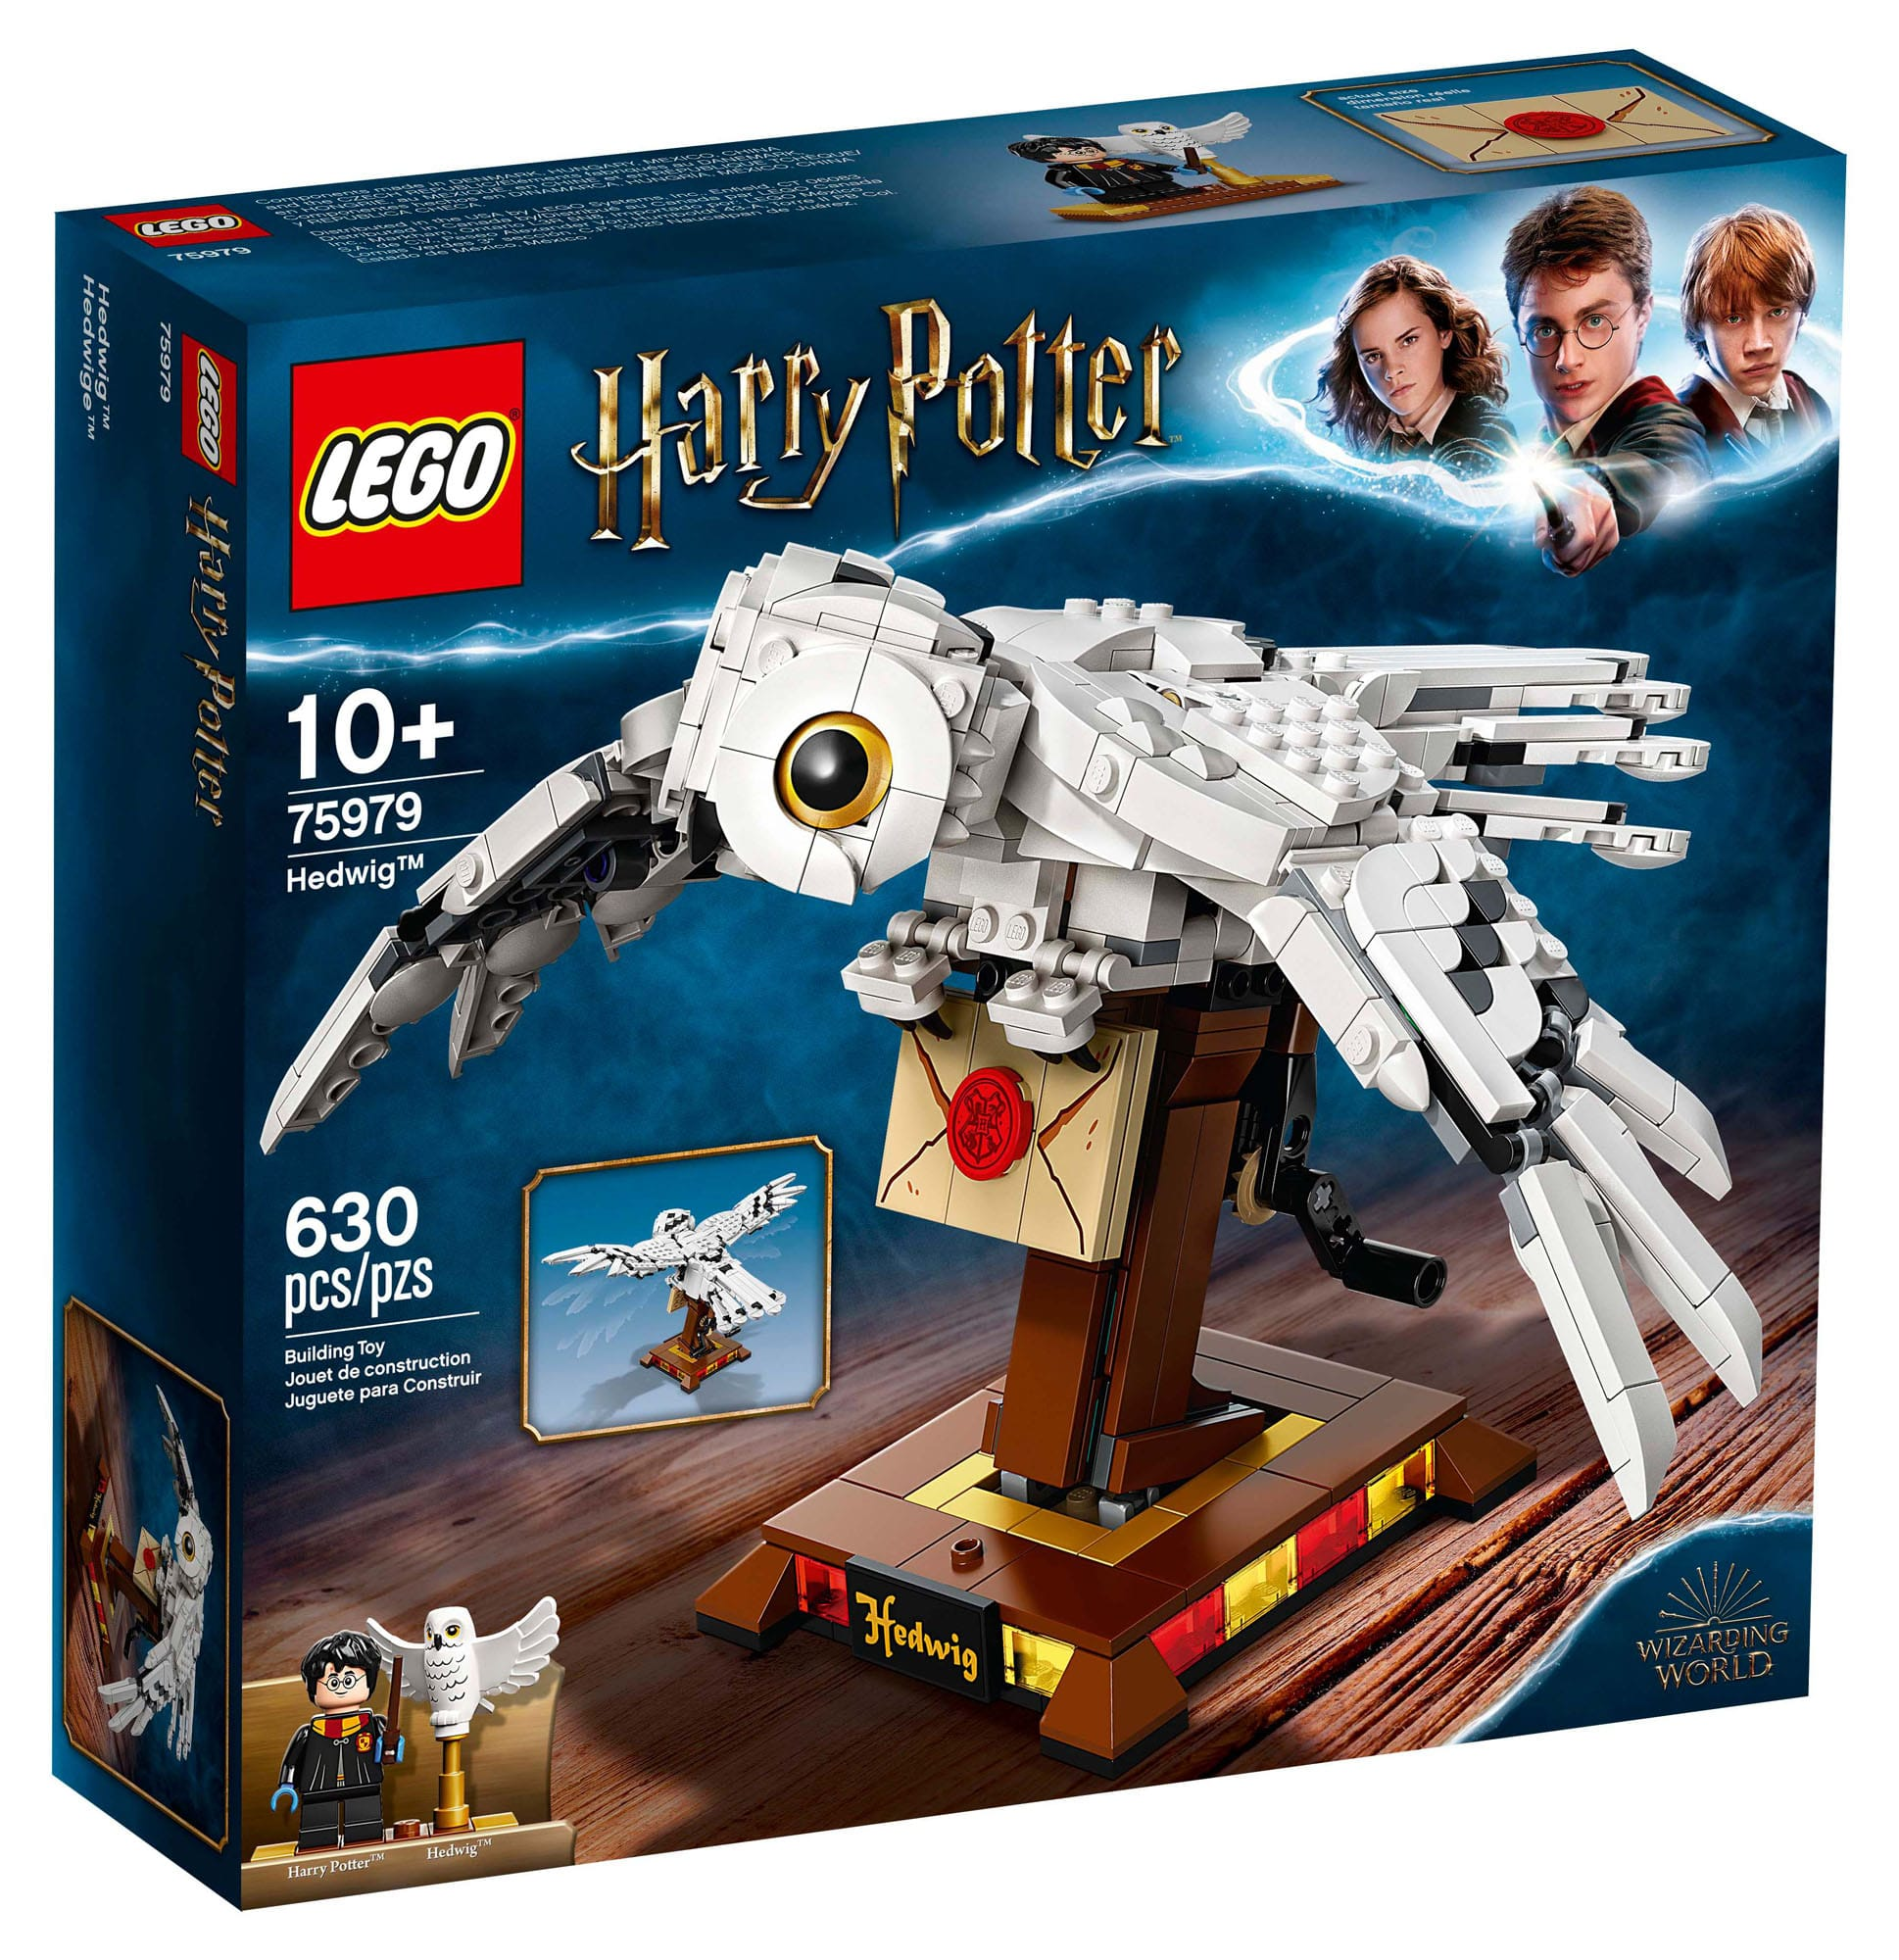 LEGO Harry Potter 75979 Hedwig (Box)